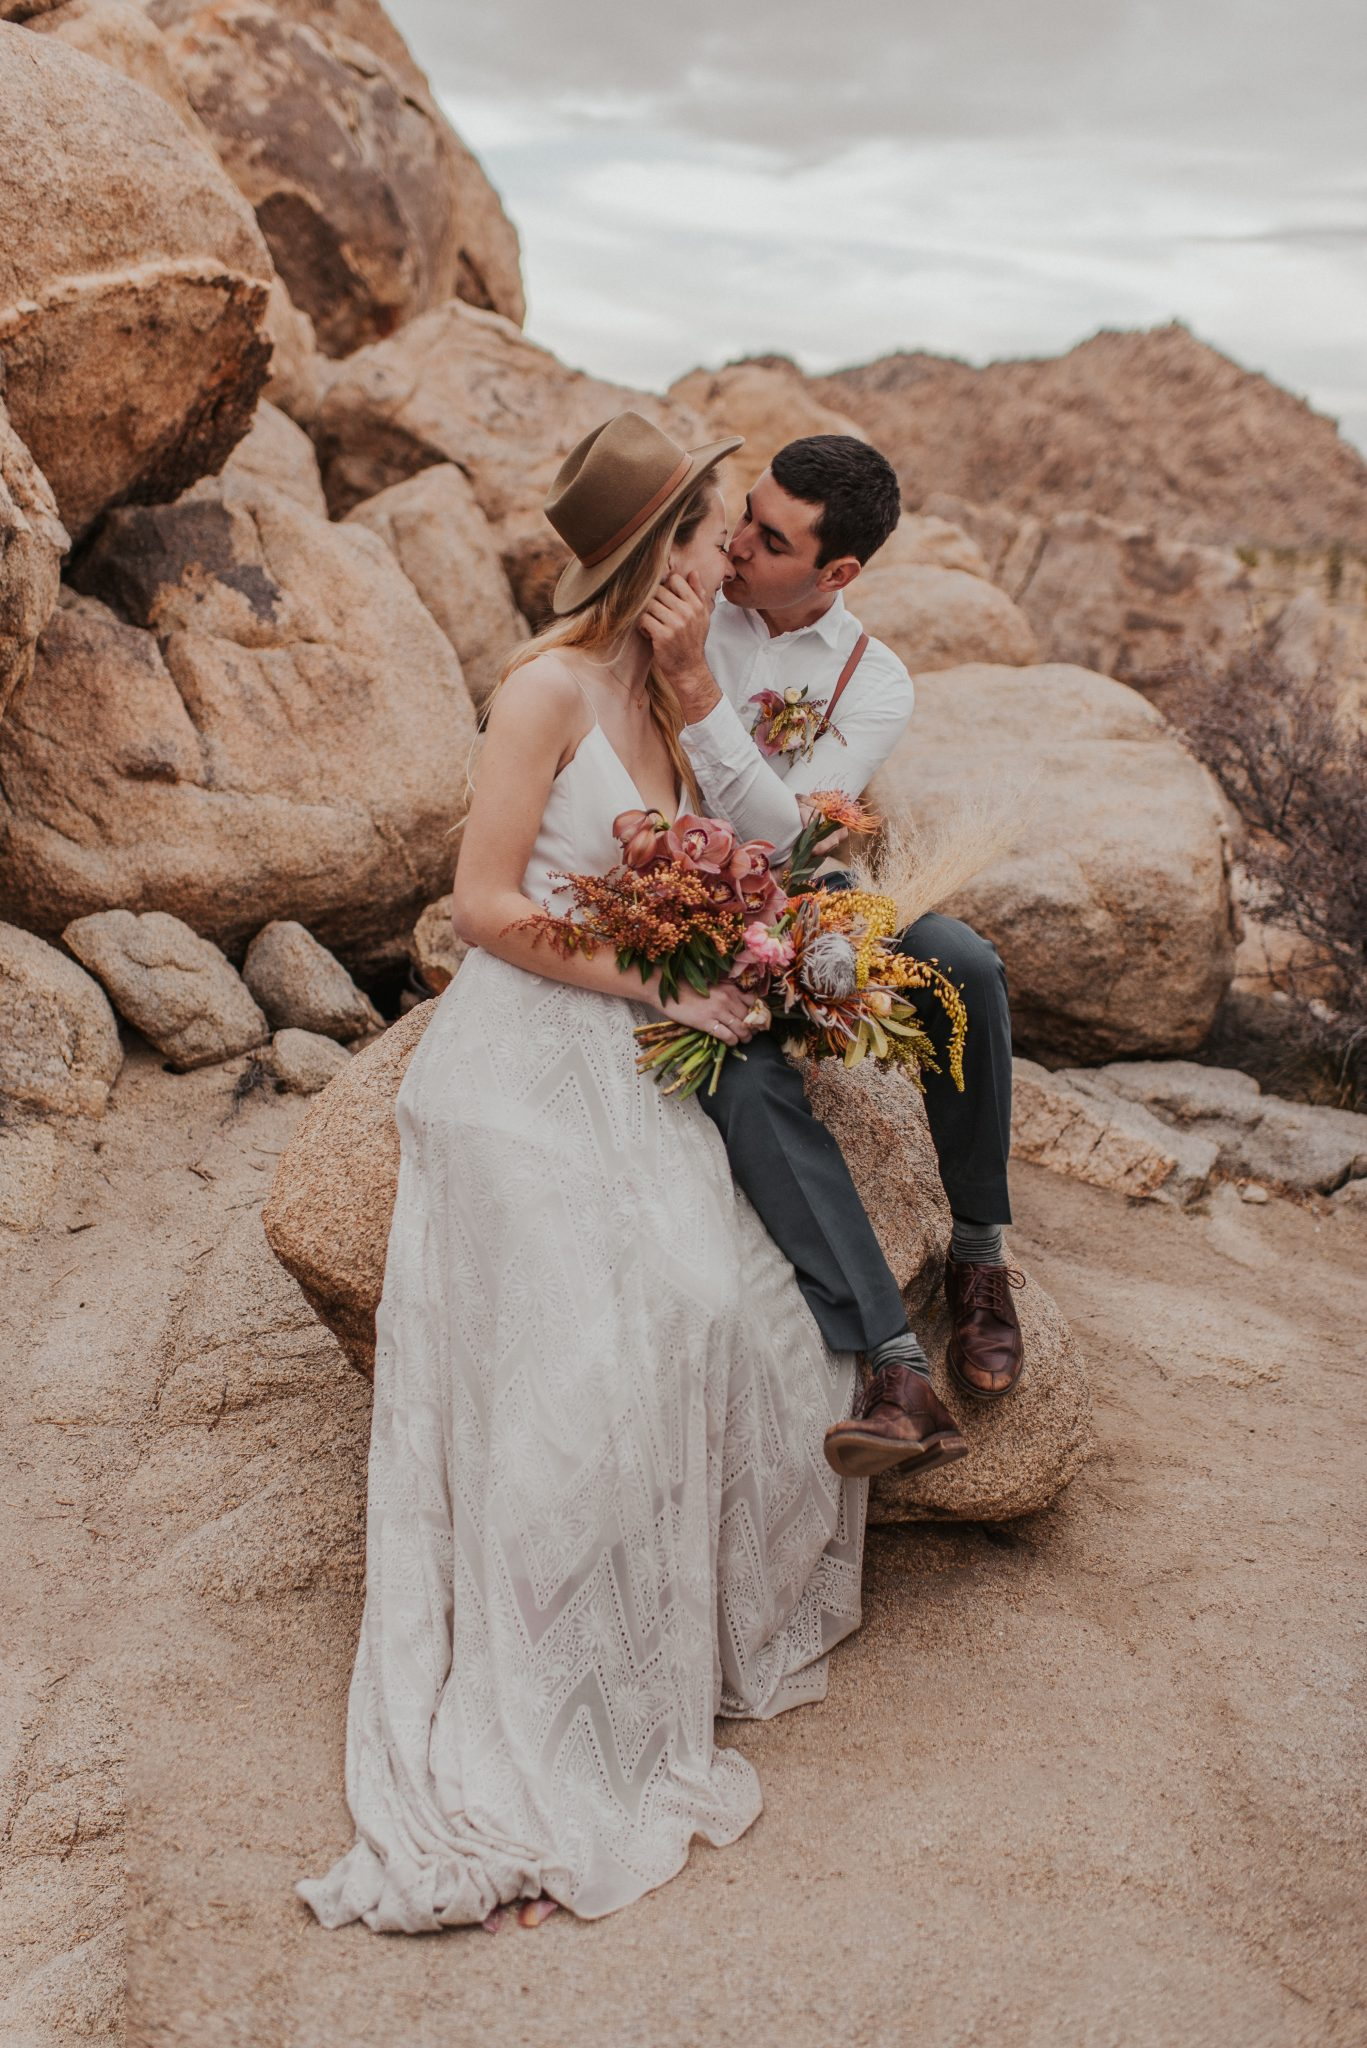 Boho bride and groom share a kiss in Joshua Tree National Park